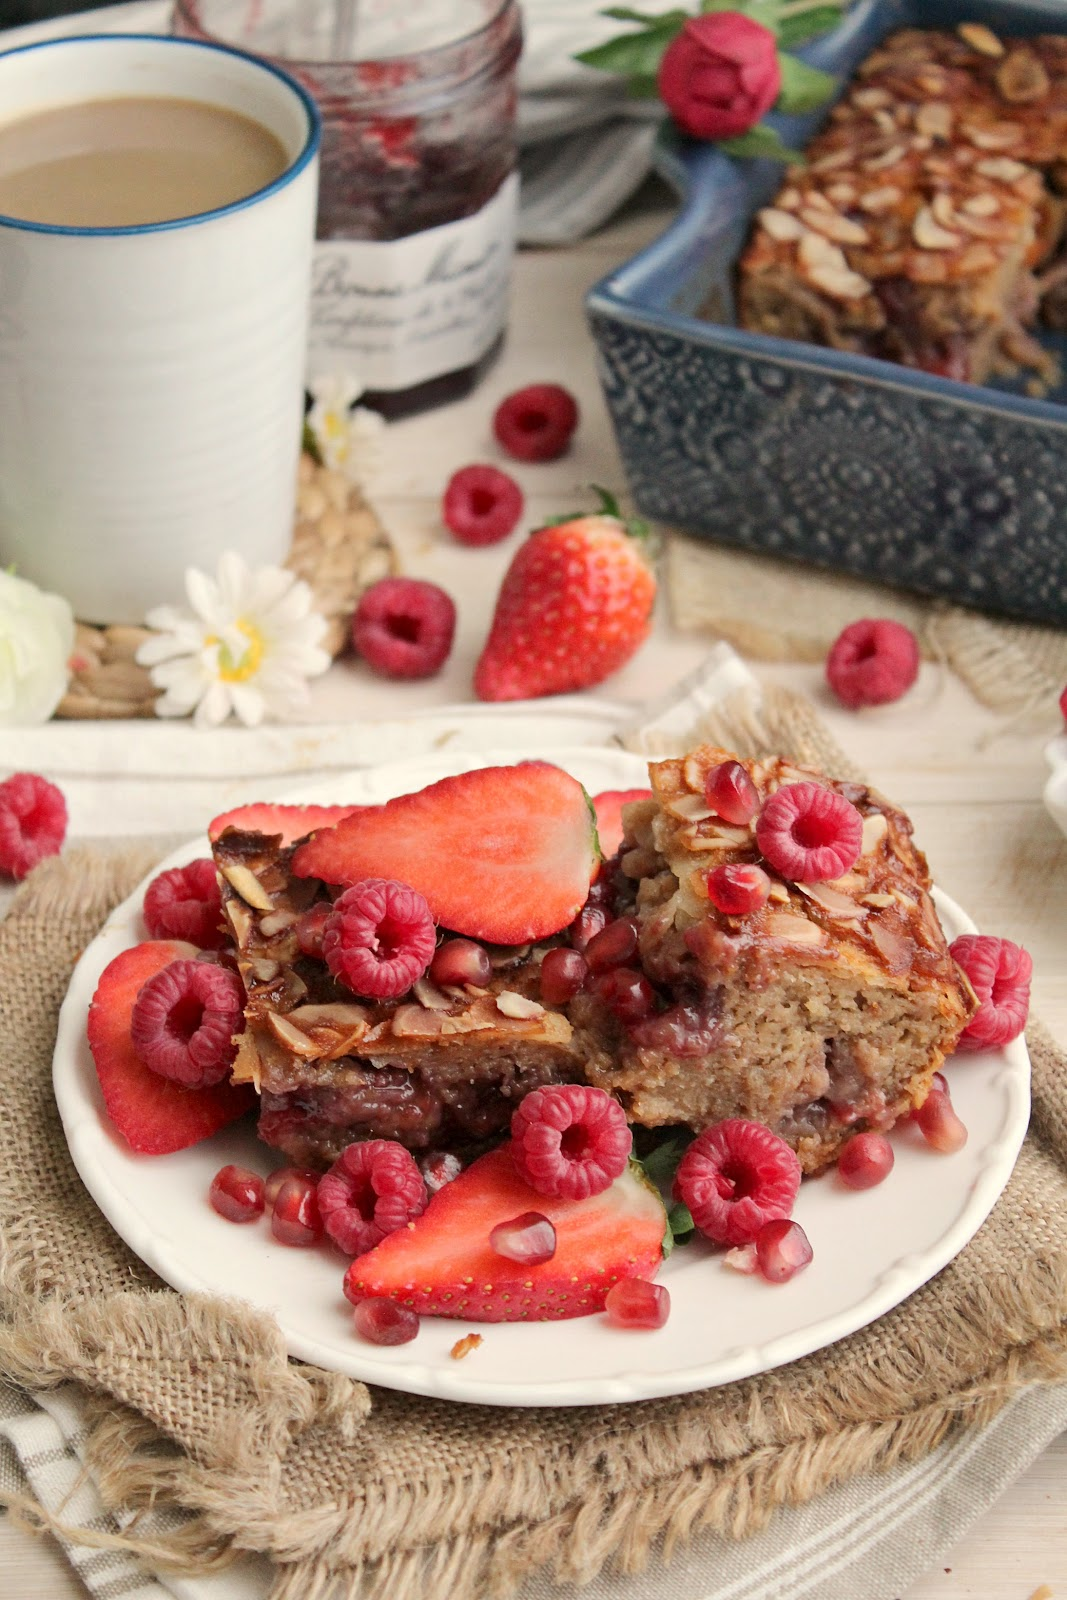 Strawberry Swirl Almond Oat Bake